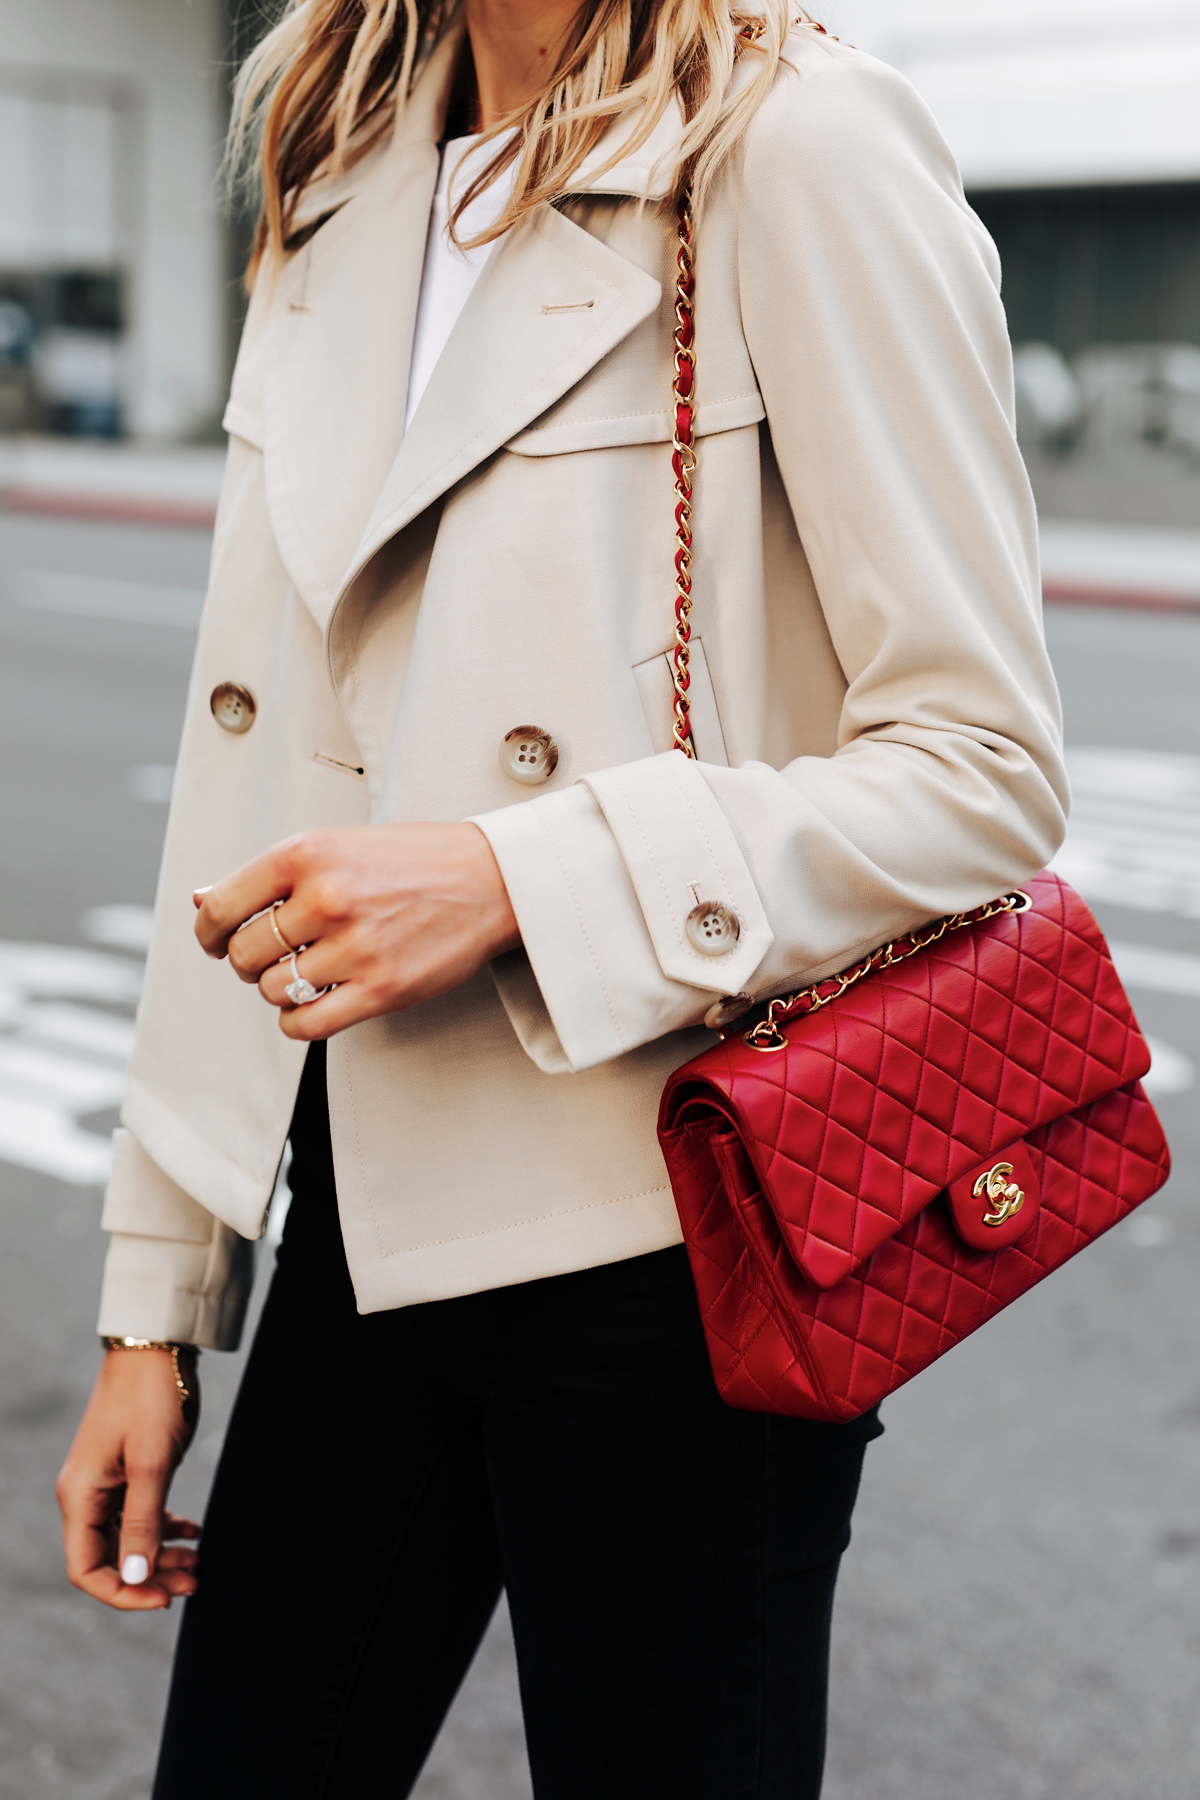 Woman Wearing Ann Taylor Short Trench Coat Black Jeans Red Chanel Classic Handbag Fashion Jackson San Diego Fashion Blogger Street Style